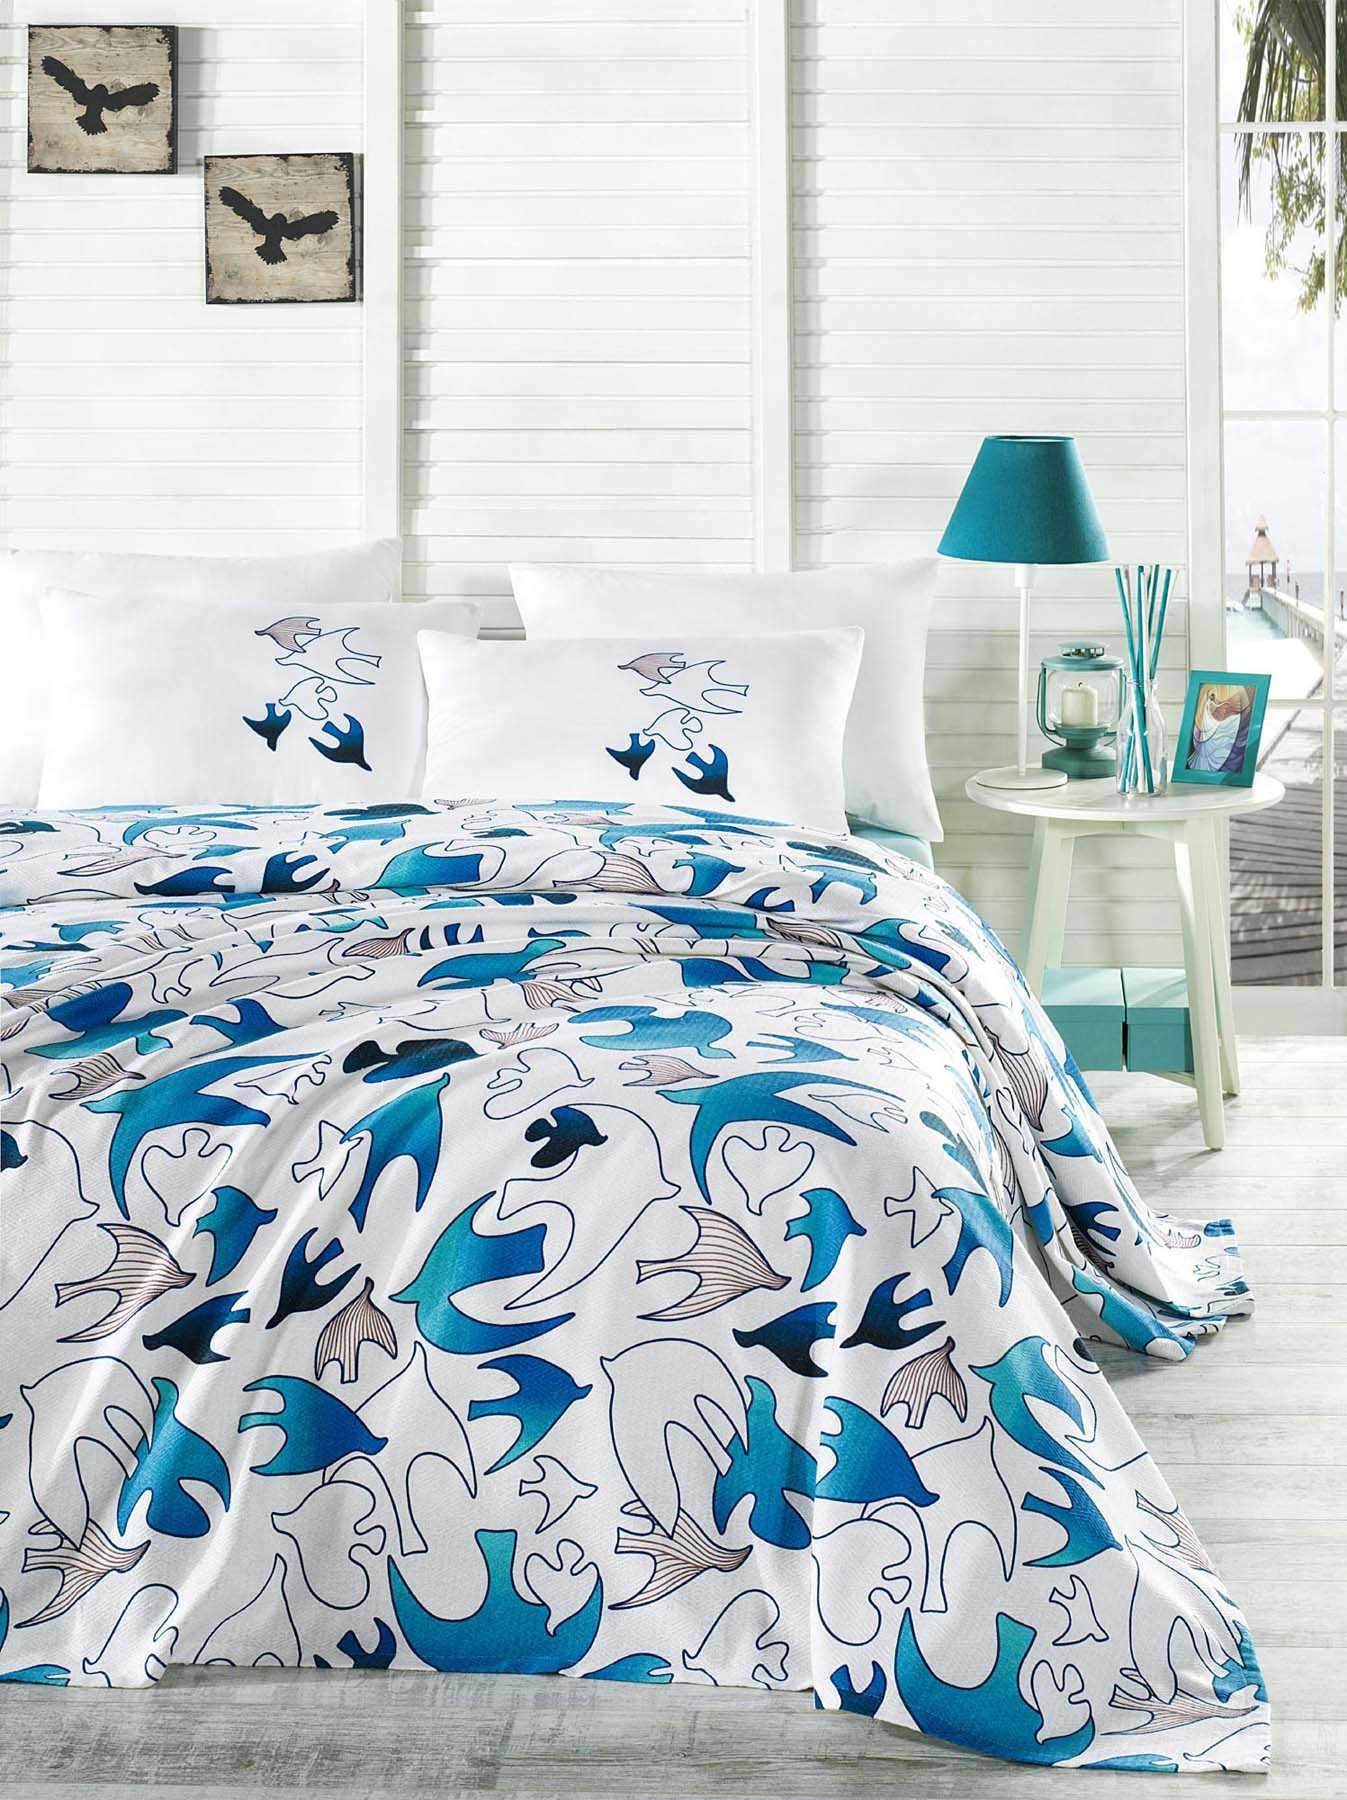 LaModaHome Luxury Soft Colored Bedroom Bedding 100% Cotton Double Coverlet (Pique) Thin Coverlet Summer/Soft Relaxed Comfortable Pattern Fish Animal /